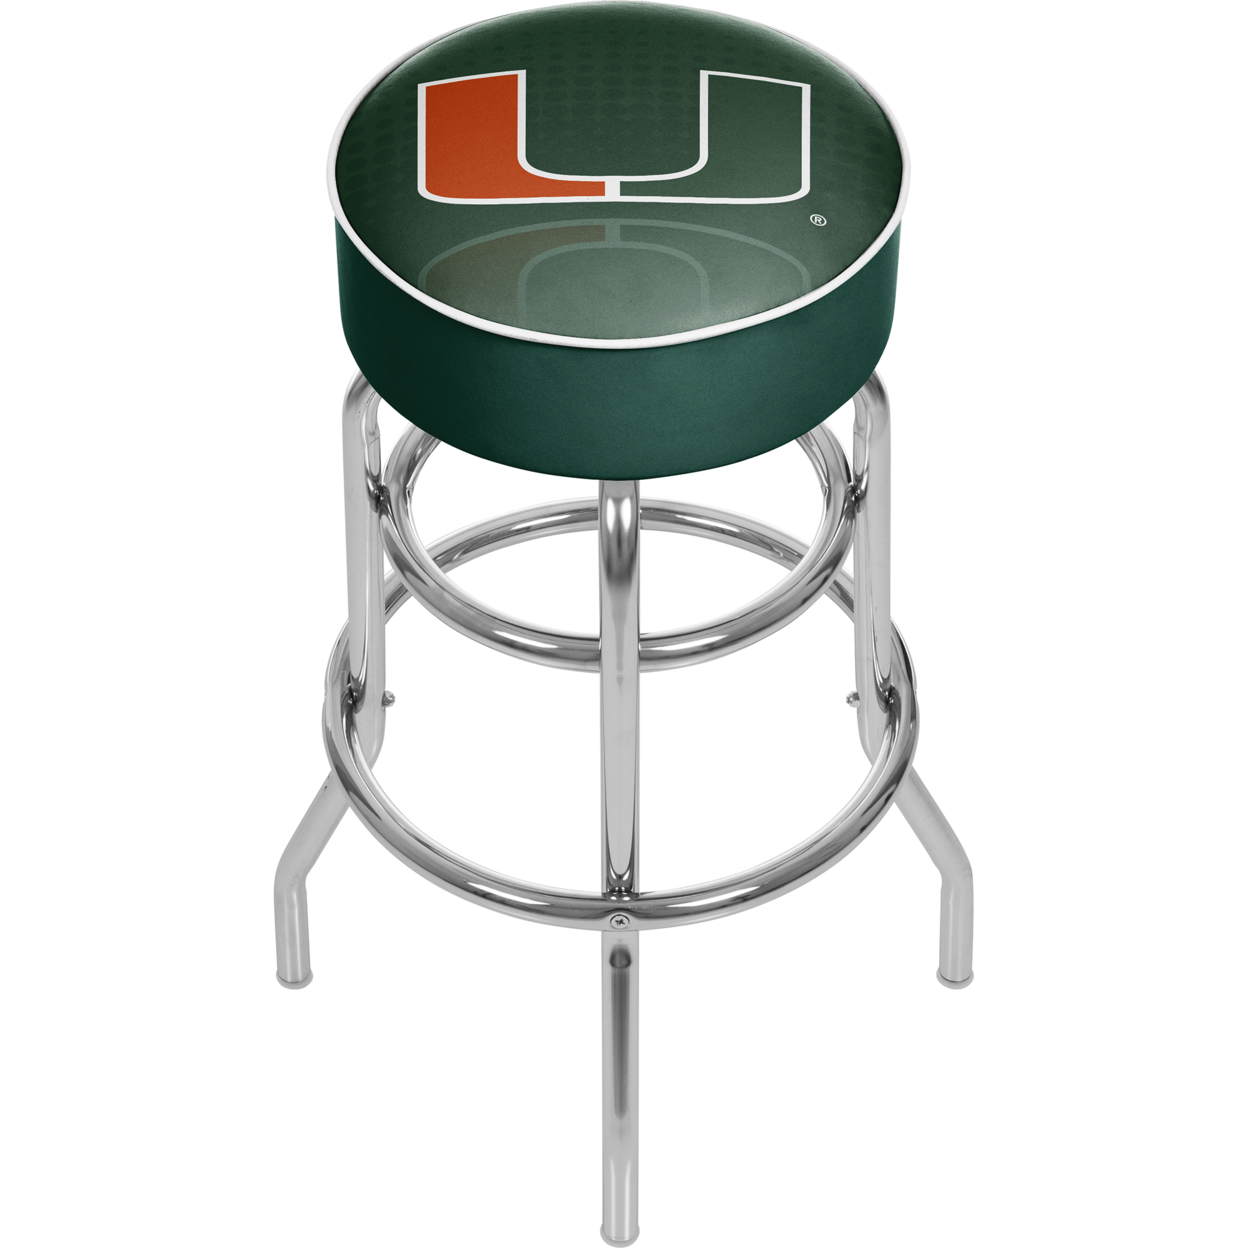 University of Miami Chrome Bar Stool with Swivel - Reflection ...